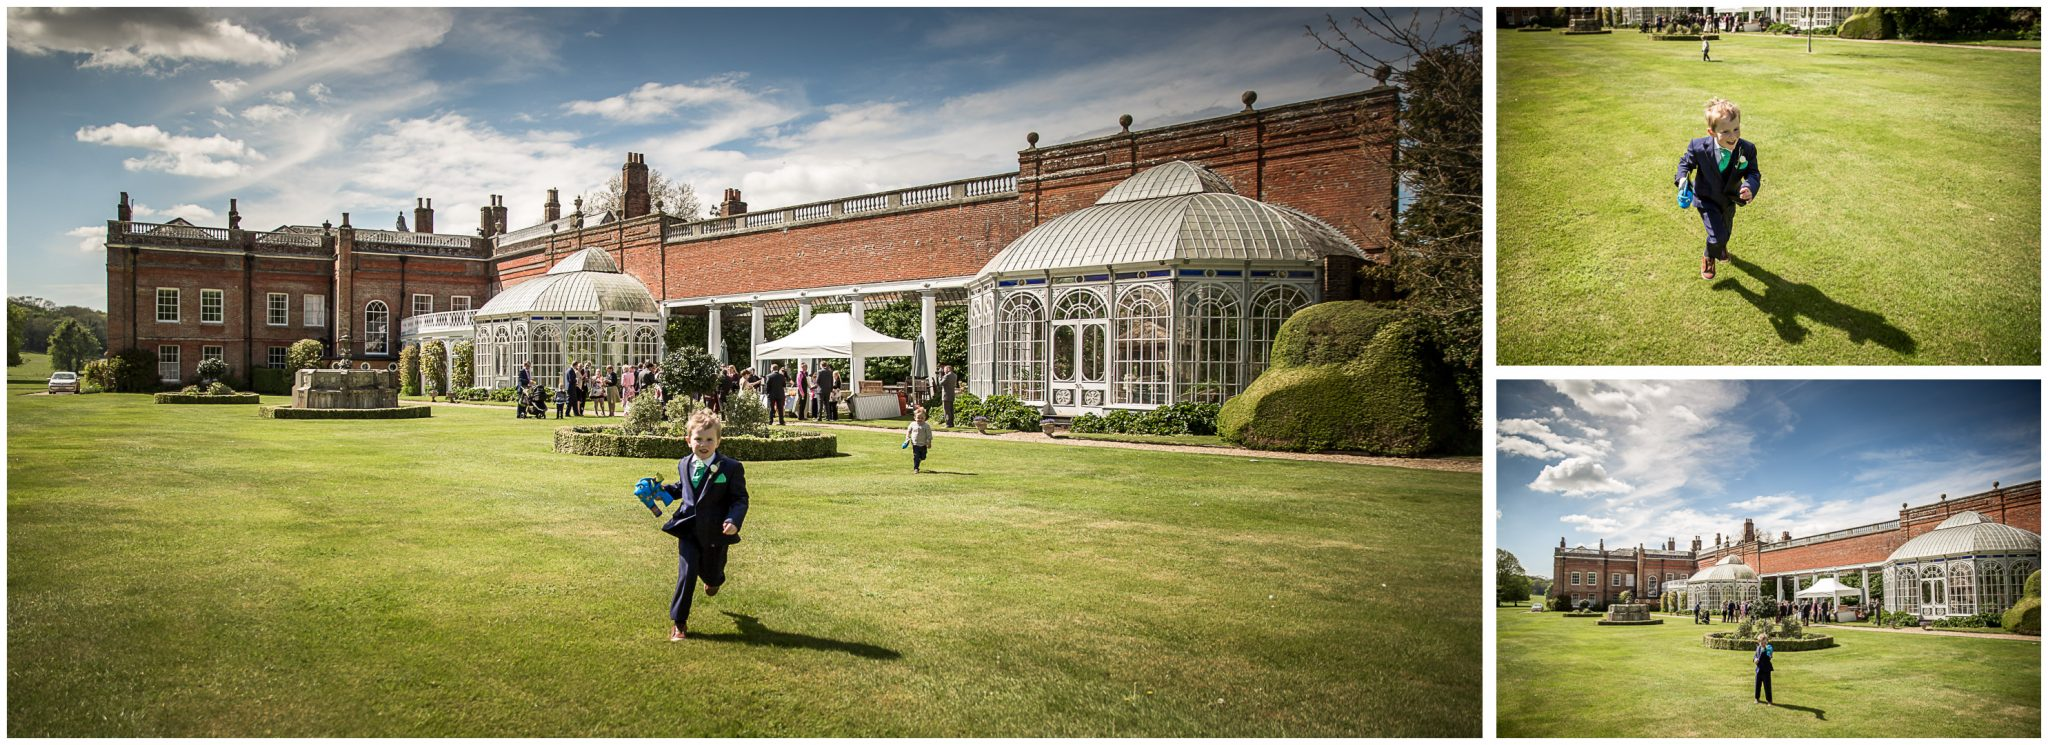 Avington Park wedding photography young guest playing in gardens